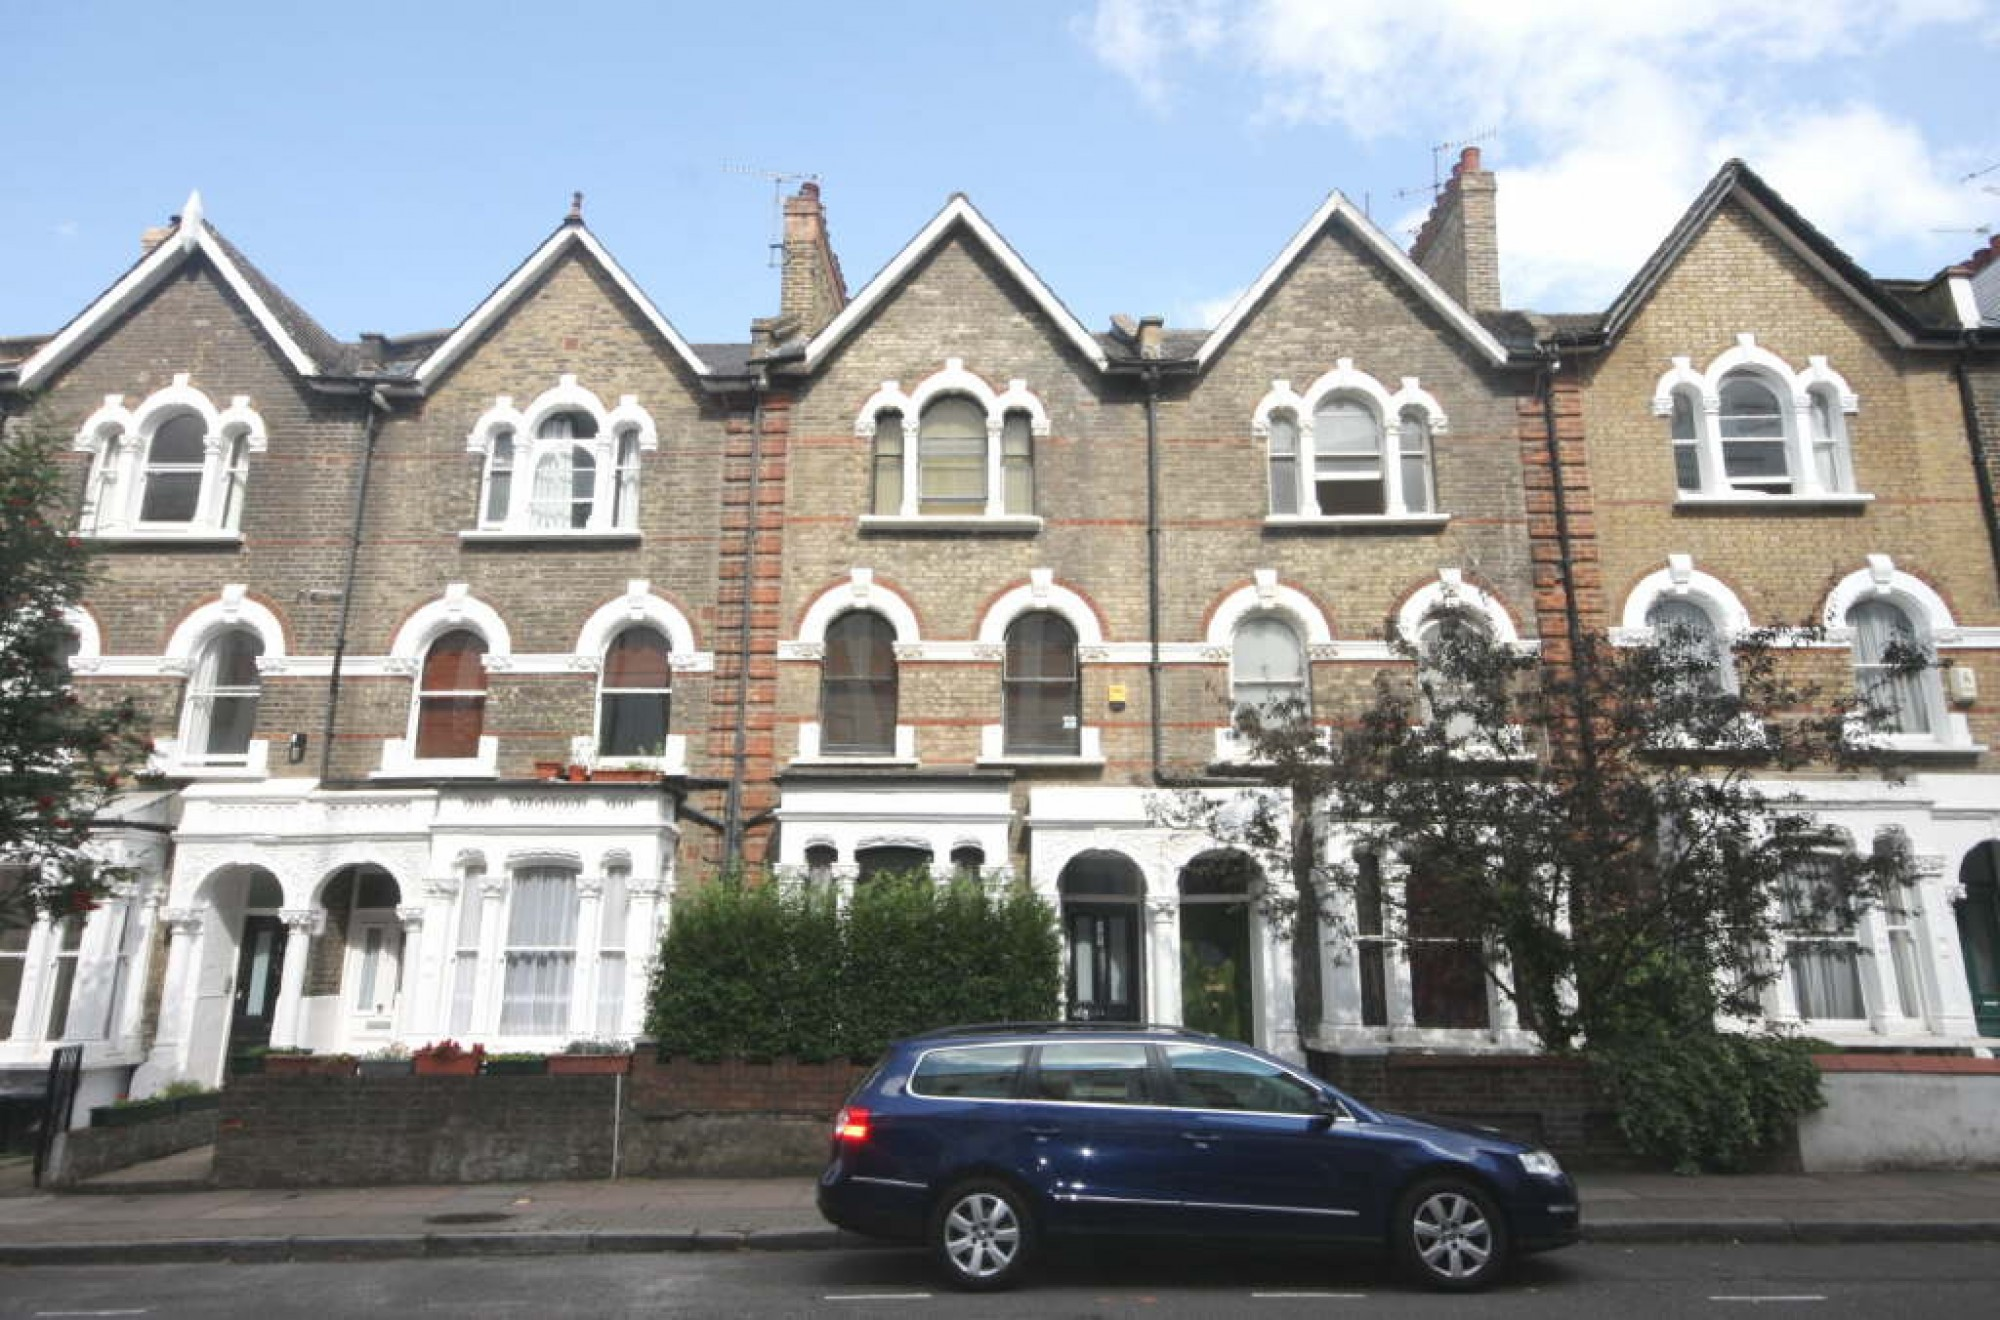 Images for Avenell Road, N5 1BT EAID:931013c273837aec744cf2e7889cb460 BID:3